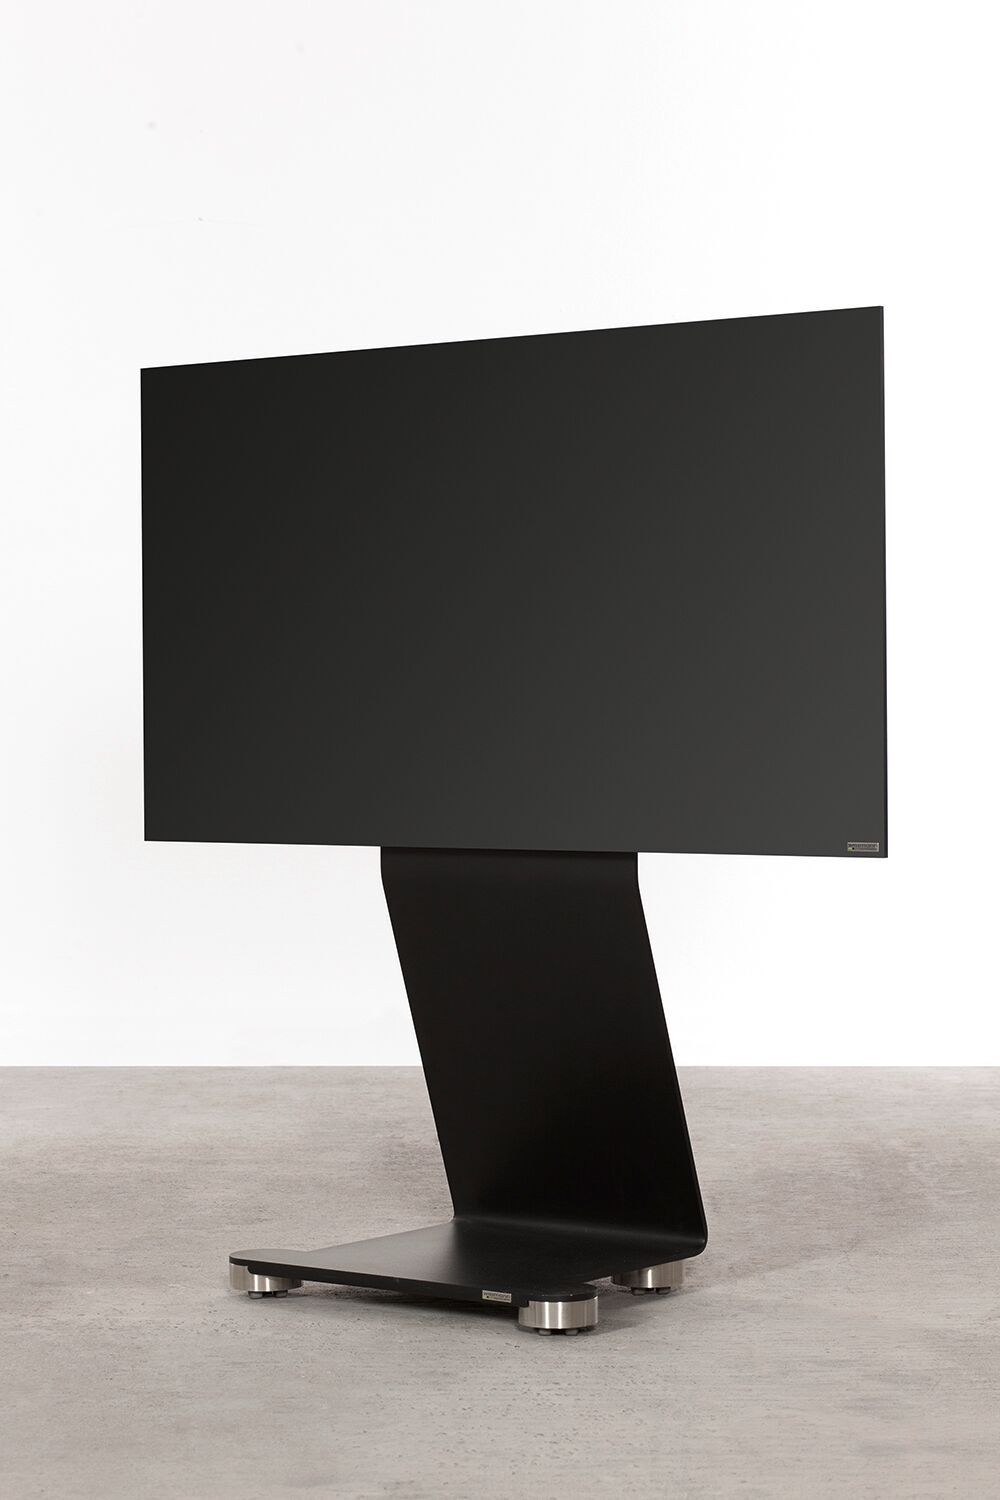 This Tv Holder Is A Free Standing Model Available With Integrated